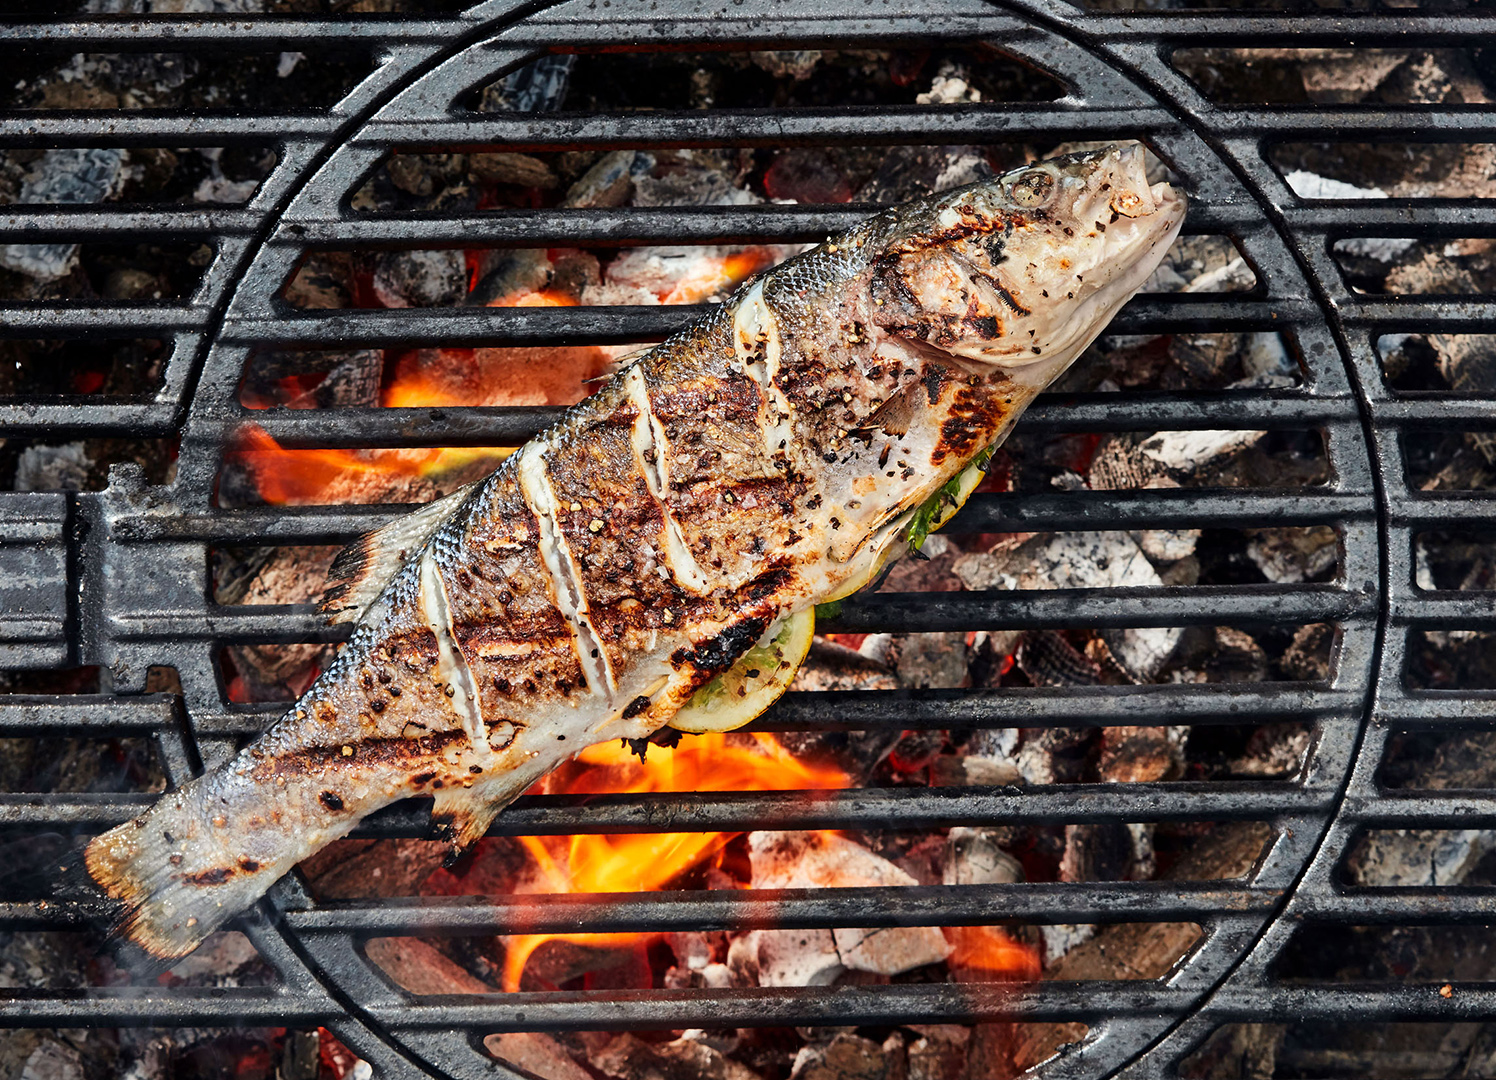 whole fish on grill